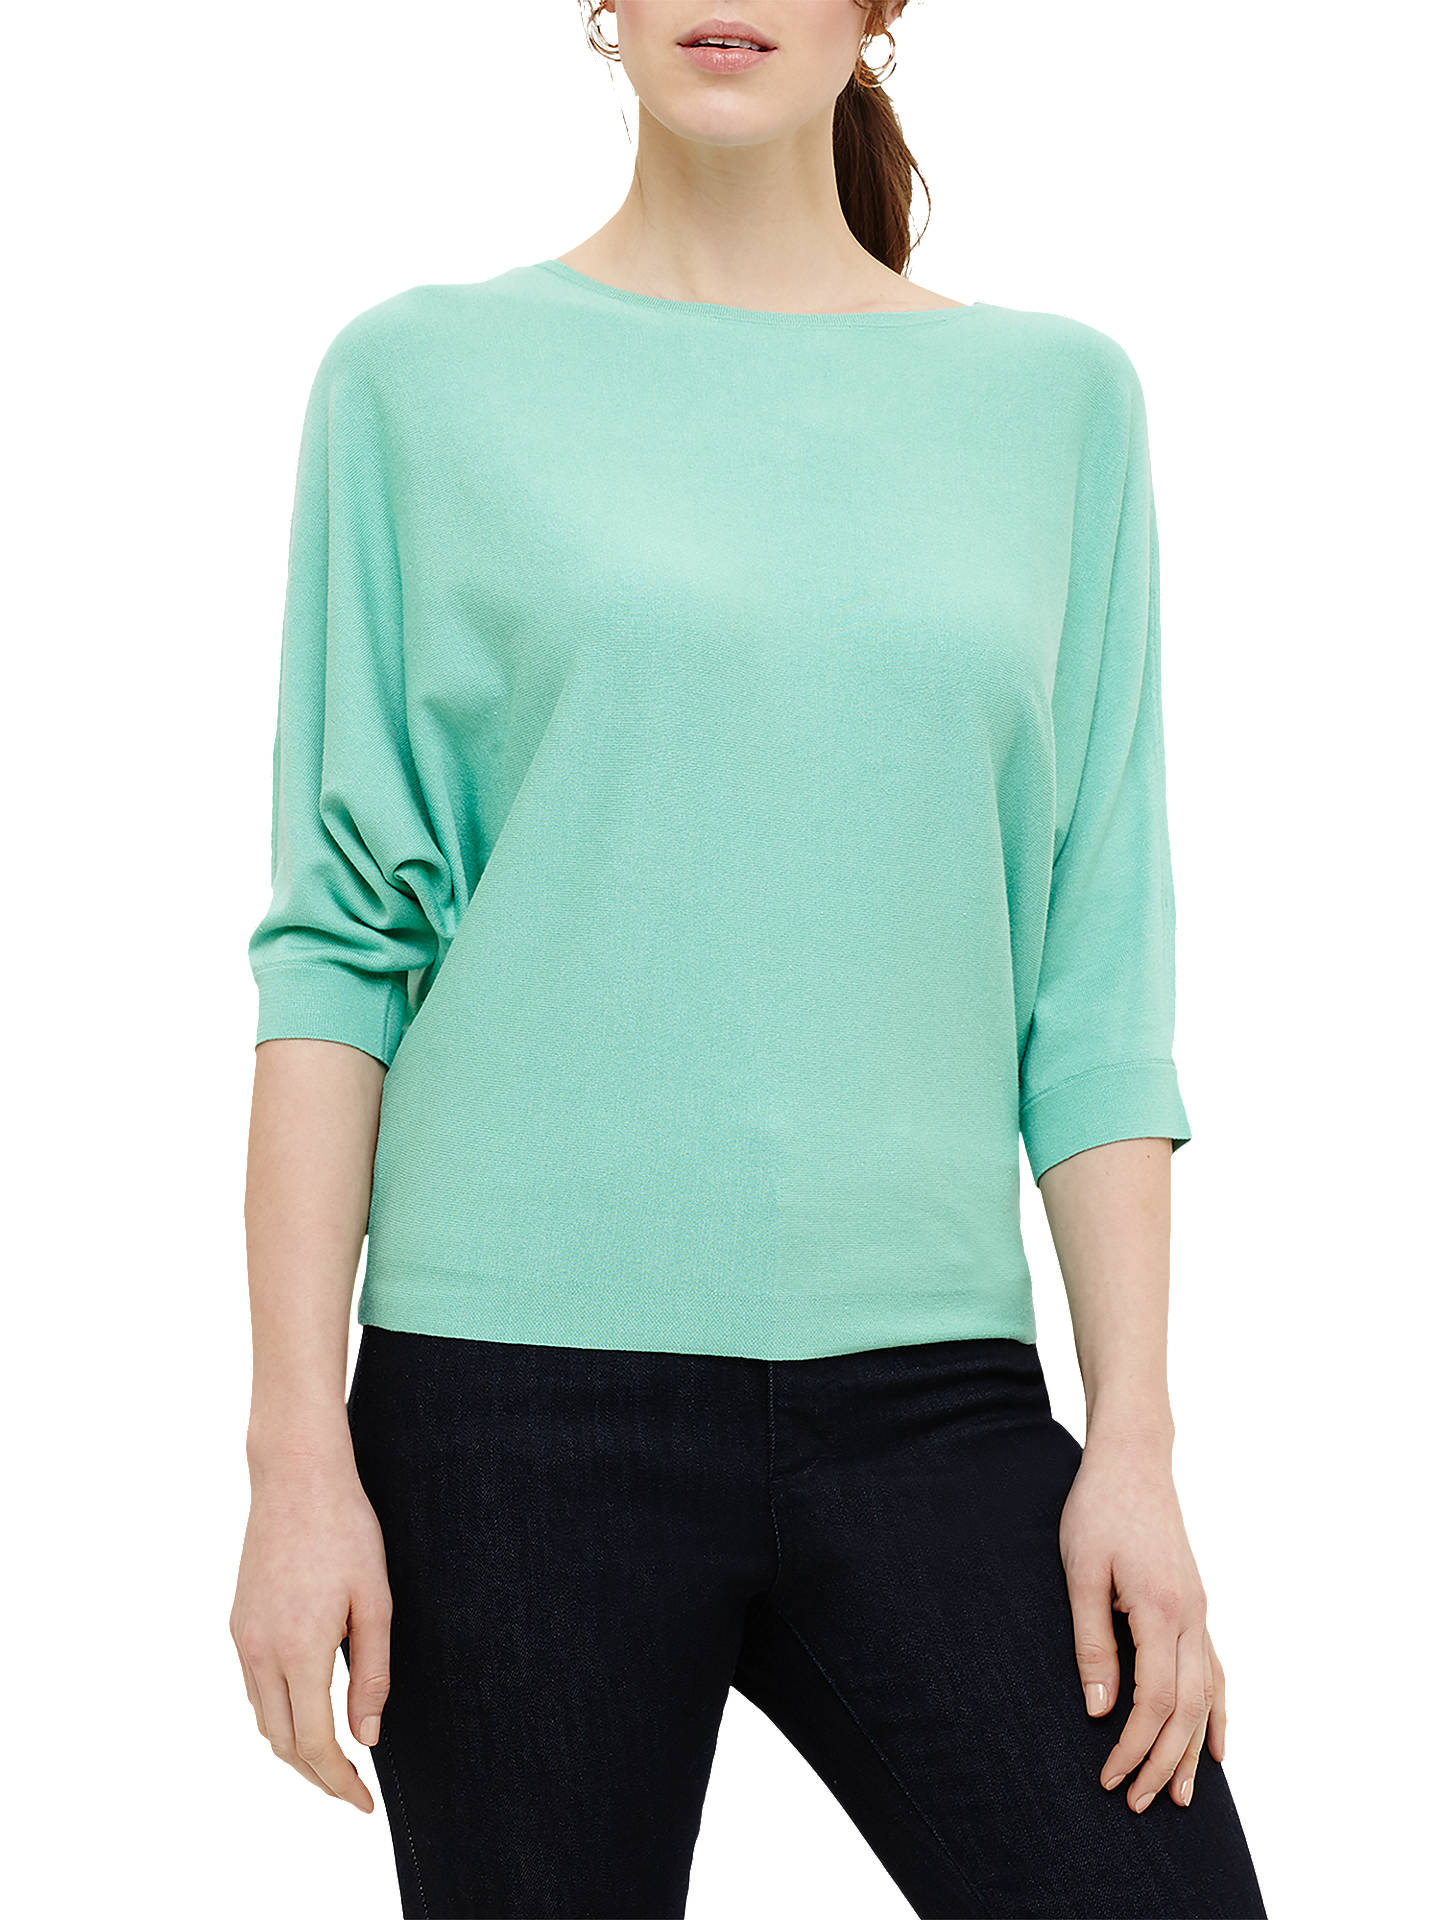 d4f3368e6a6 Phase Eight Cristine Batwing Jumper at John Lewis & Partners